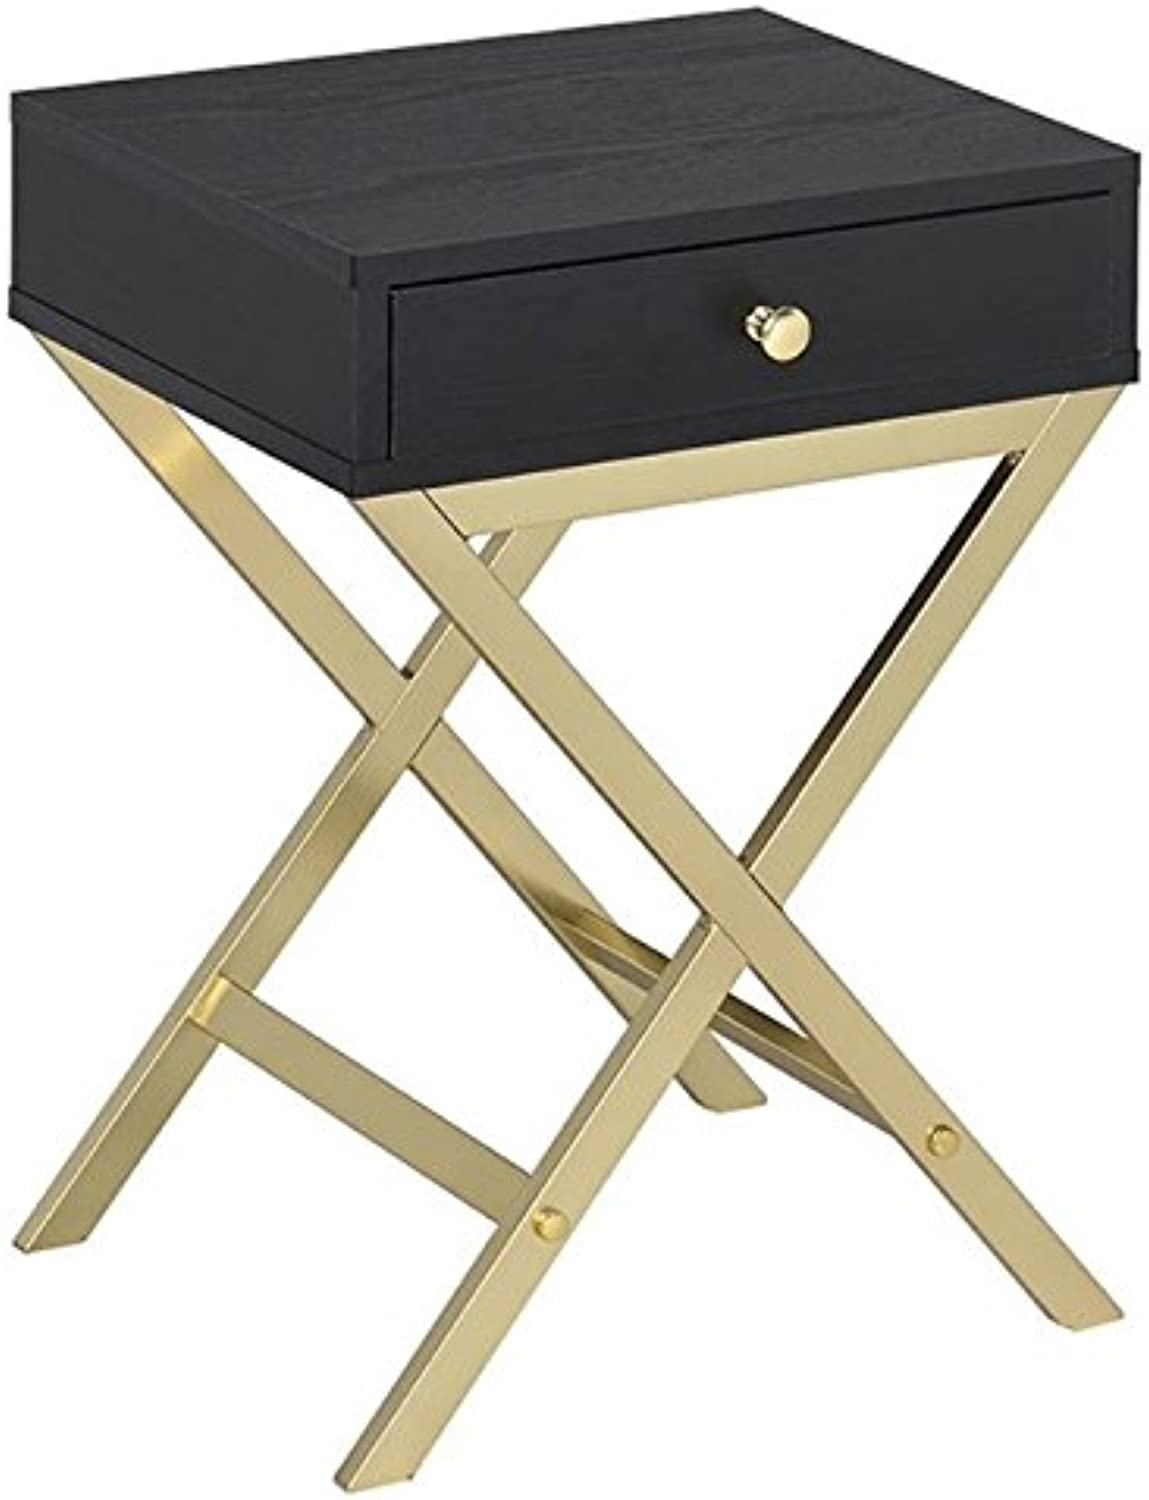 Bowery Hill End Table in Black and Brass